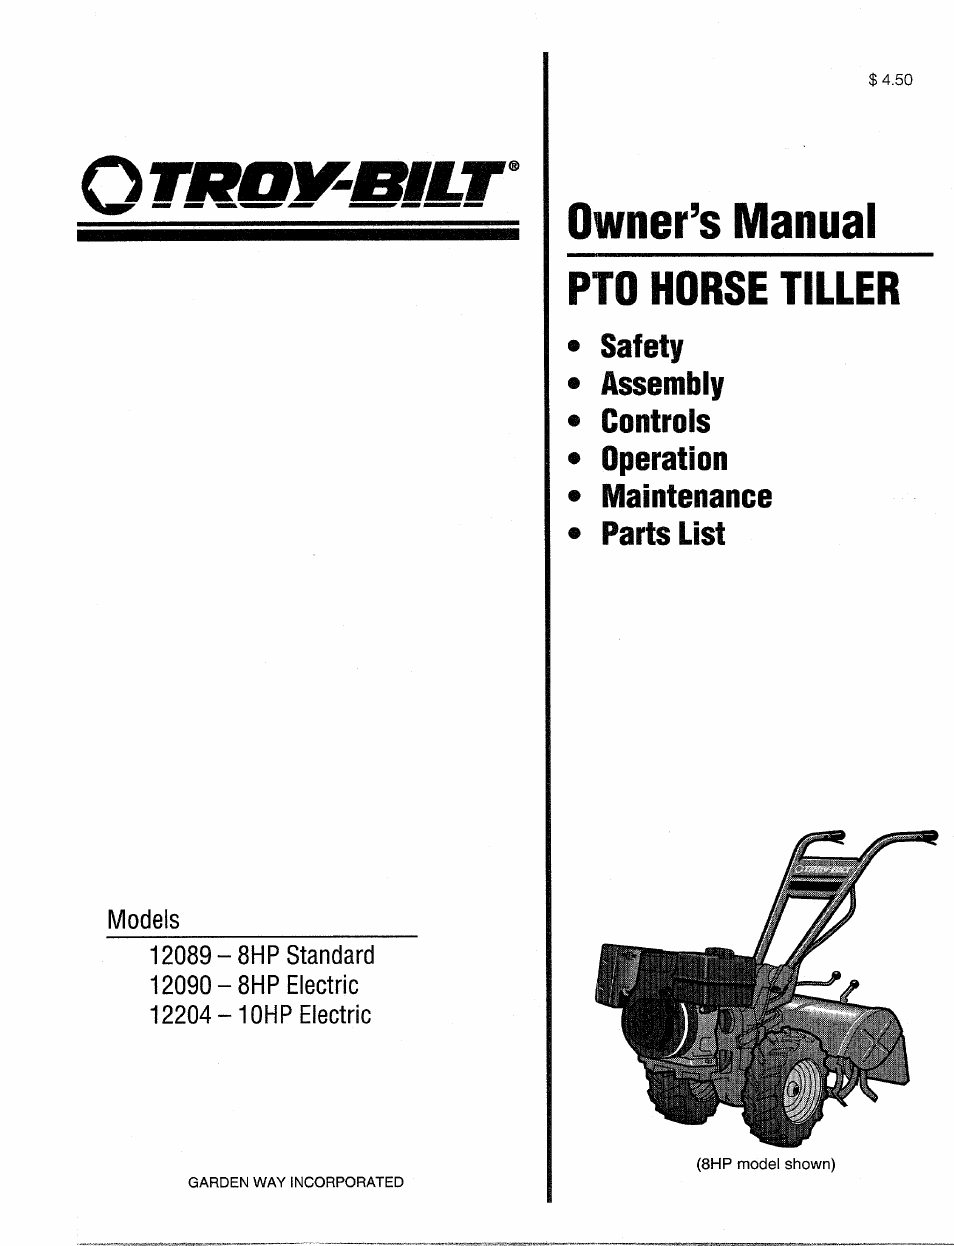 Troy bilt 12204 10hp user manual 64 pages publicscrutiny Gallery